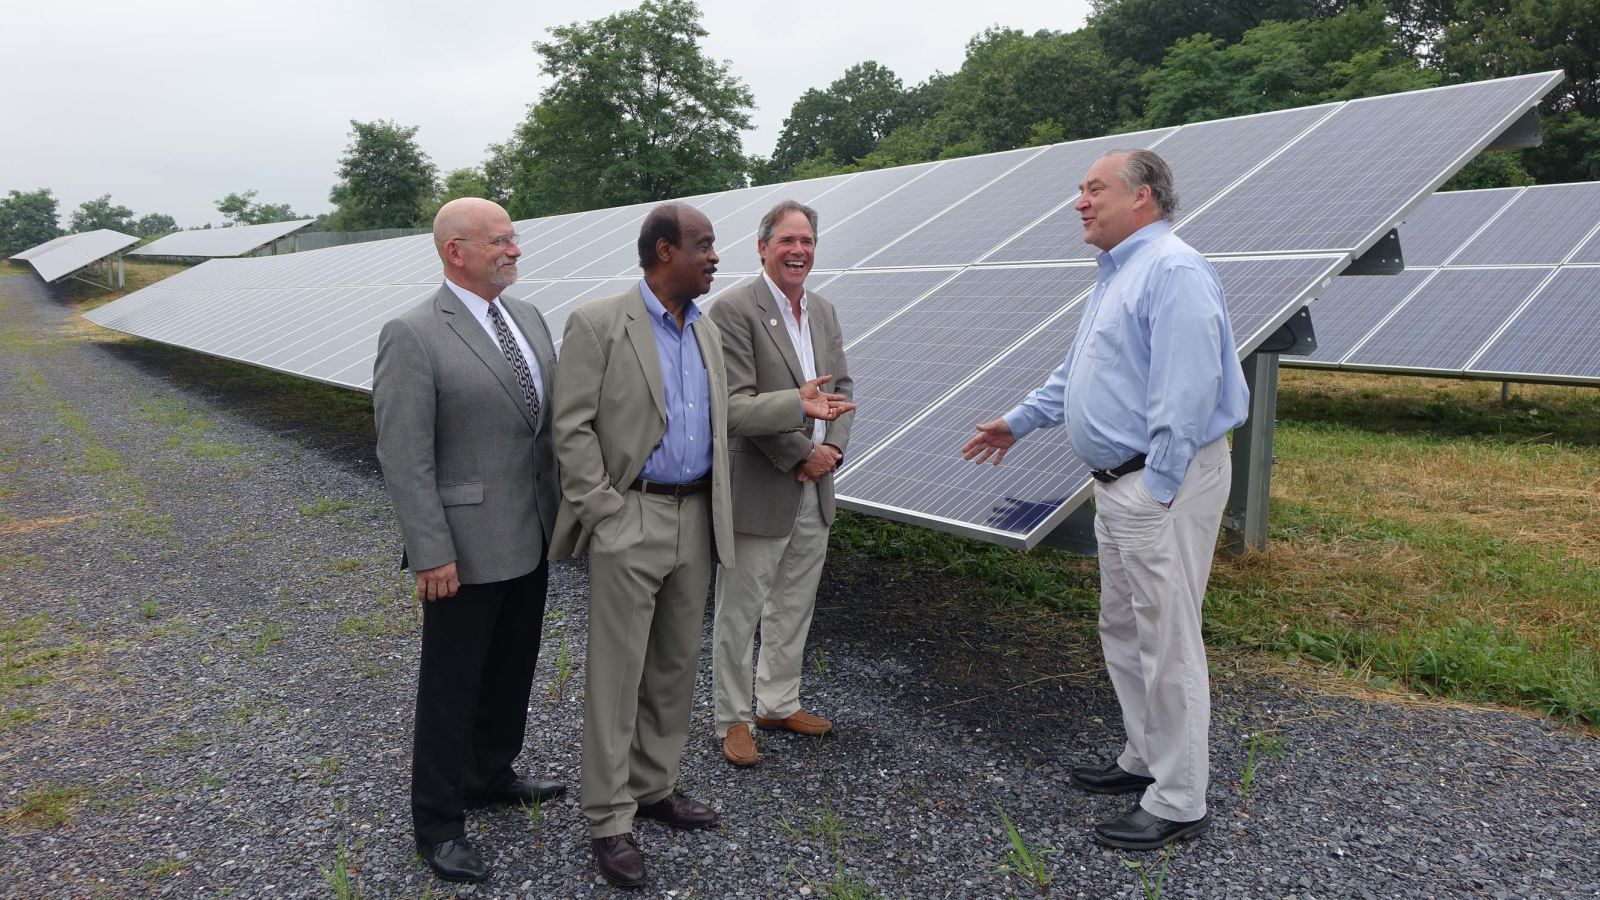 Celetrating the largest solar project at County's Correctional Facility